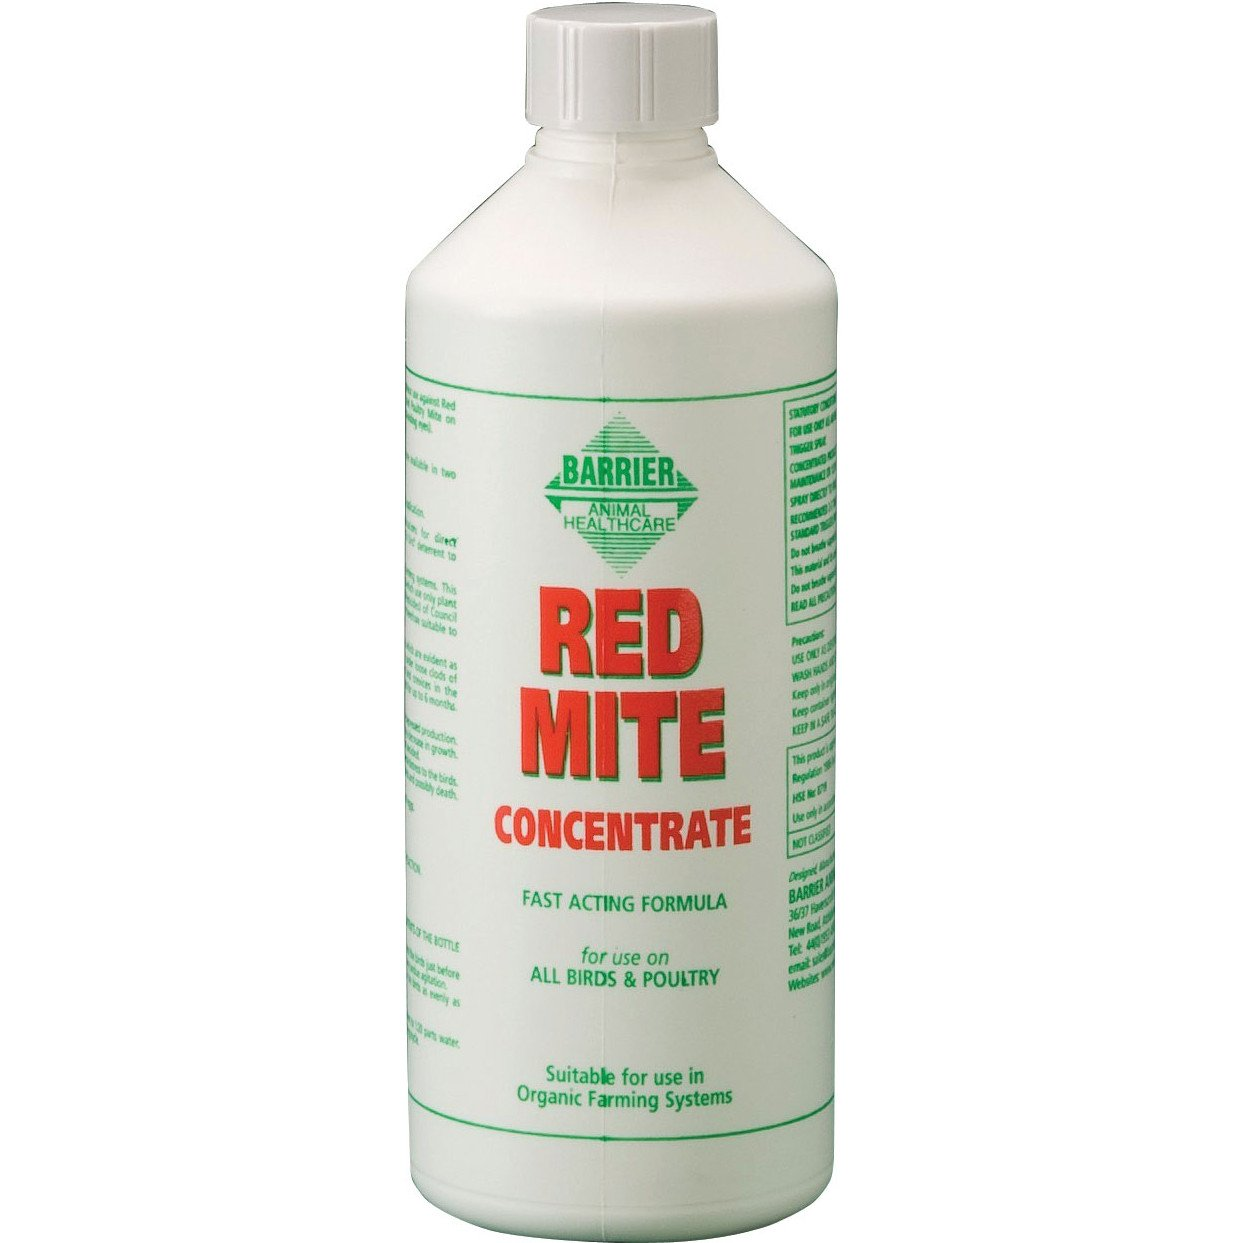 Barrier Animal Healthcare Red Mite Concentrate, 500 ml 14RMC